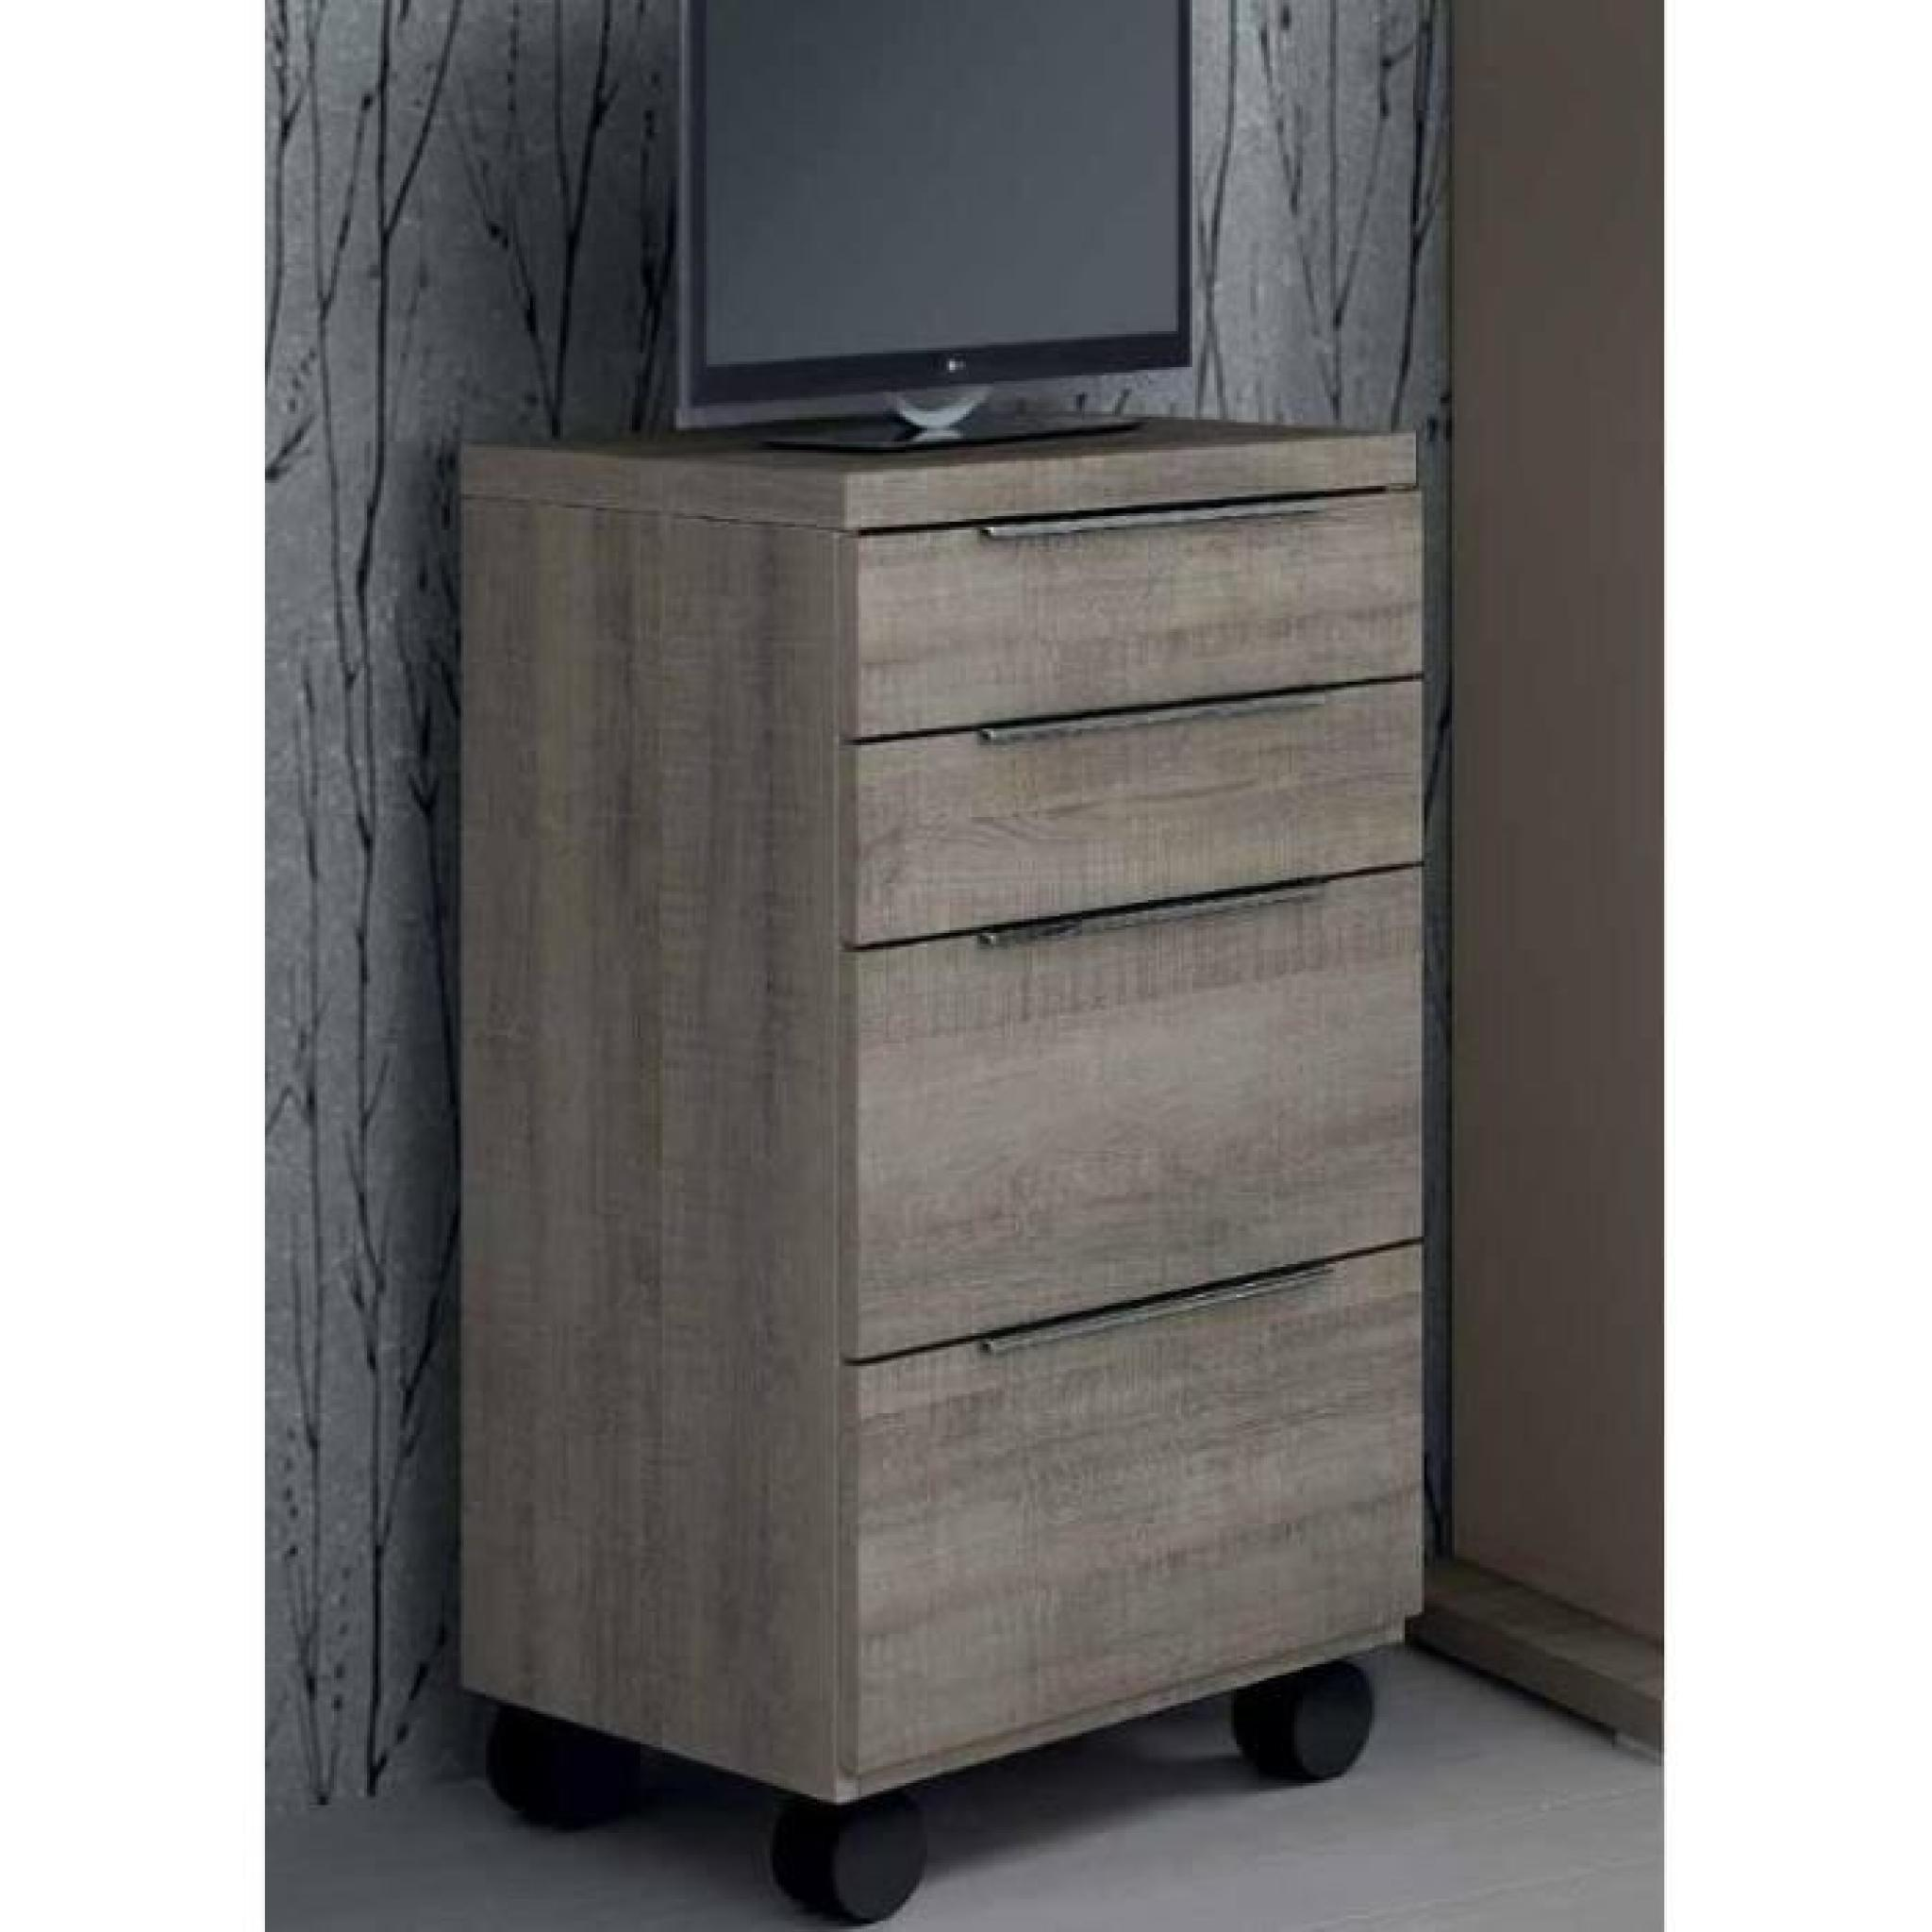 chiffonnier sur roulette 4 tiroirs achat vente commode pas cher couleur et. Black Bedroom Furniture Sets. Home Design Ideas